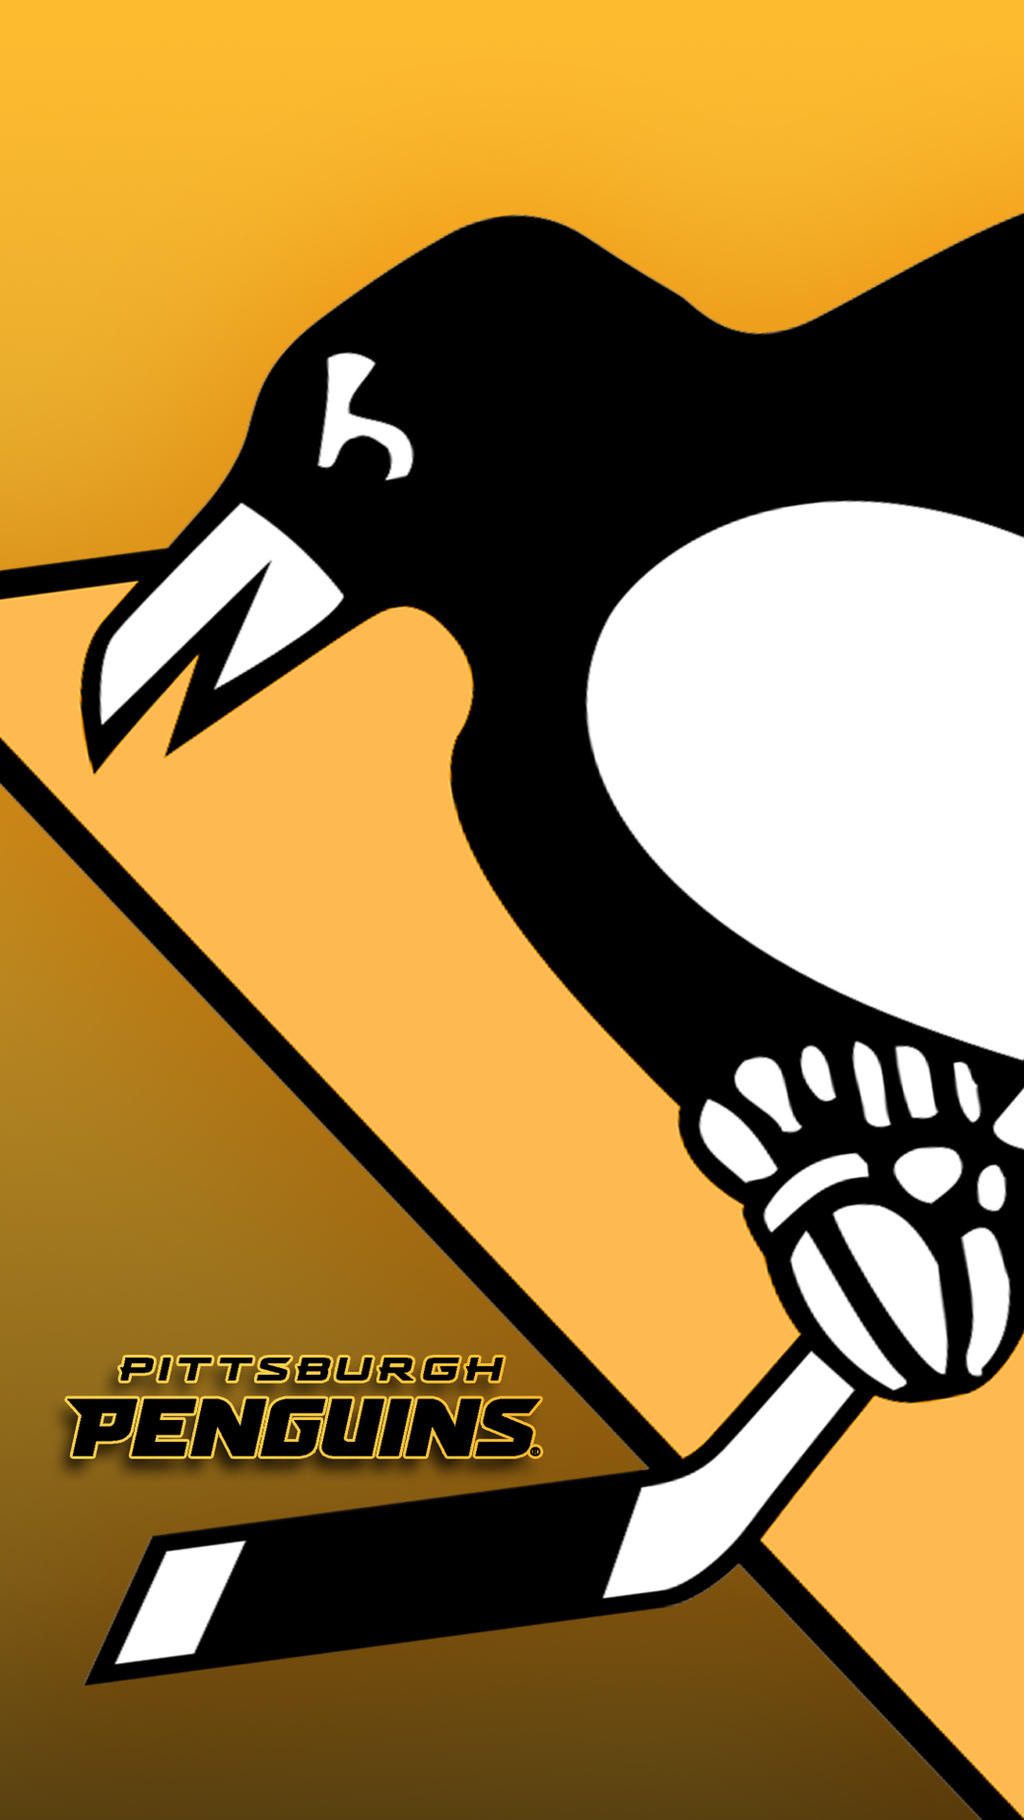 Penguins 2016 by jmcgrew on deviantart - Pittsburgh penguins iphone wallpaper ...